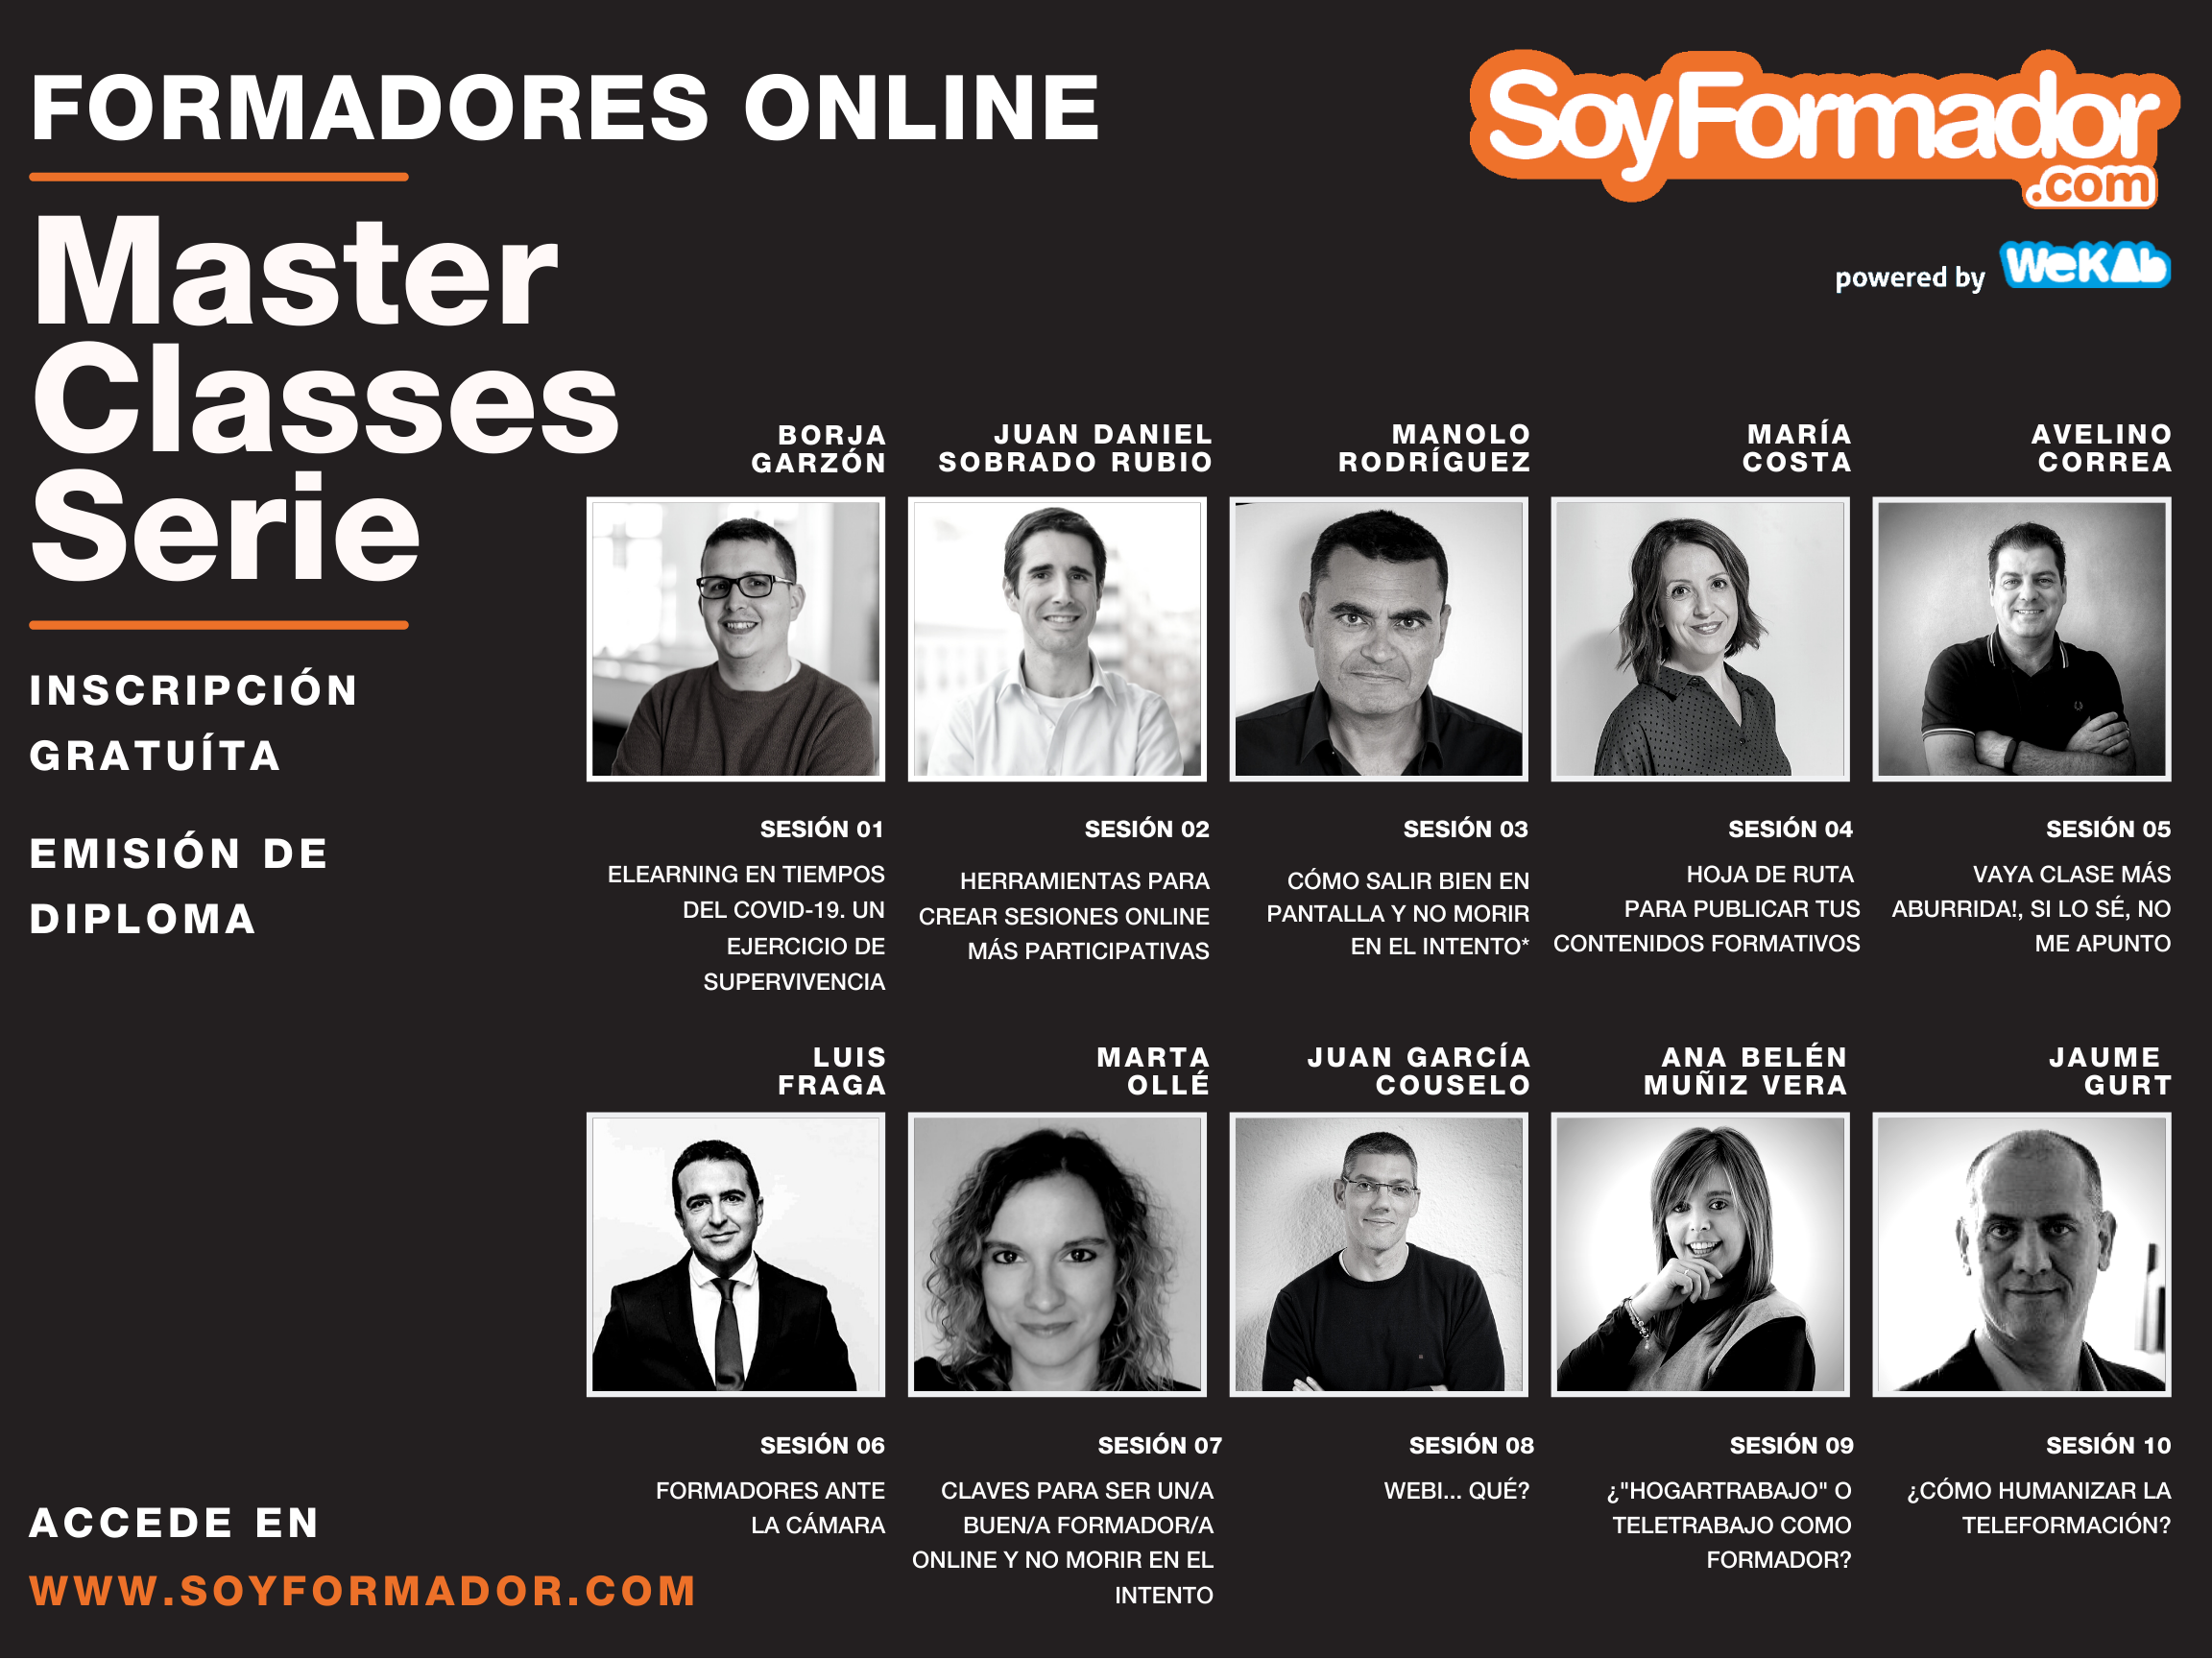 MASTERCLASS SERIE - Formadores online